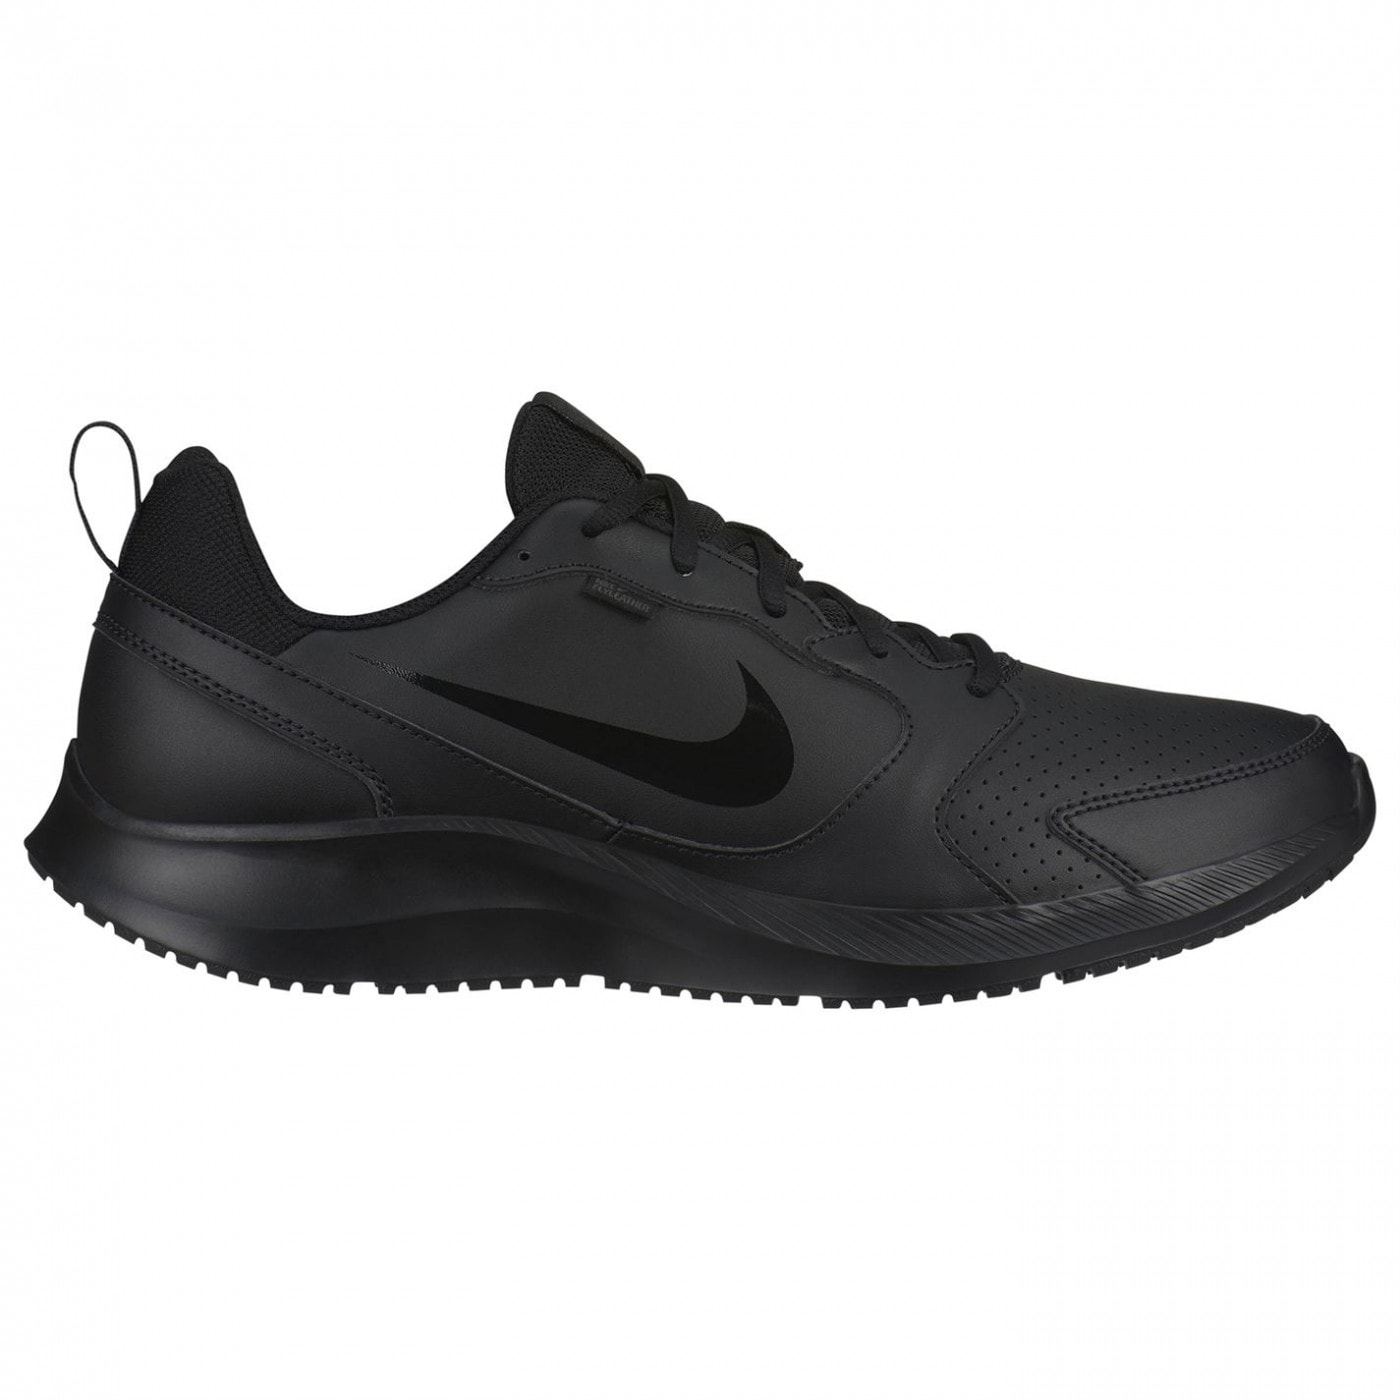 Men's trainers Nike Todos RN